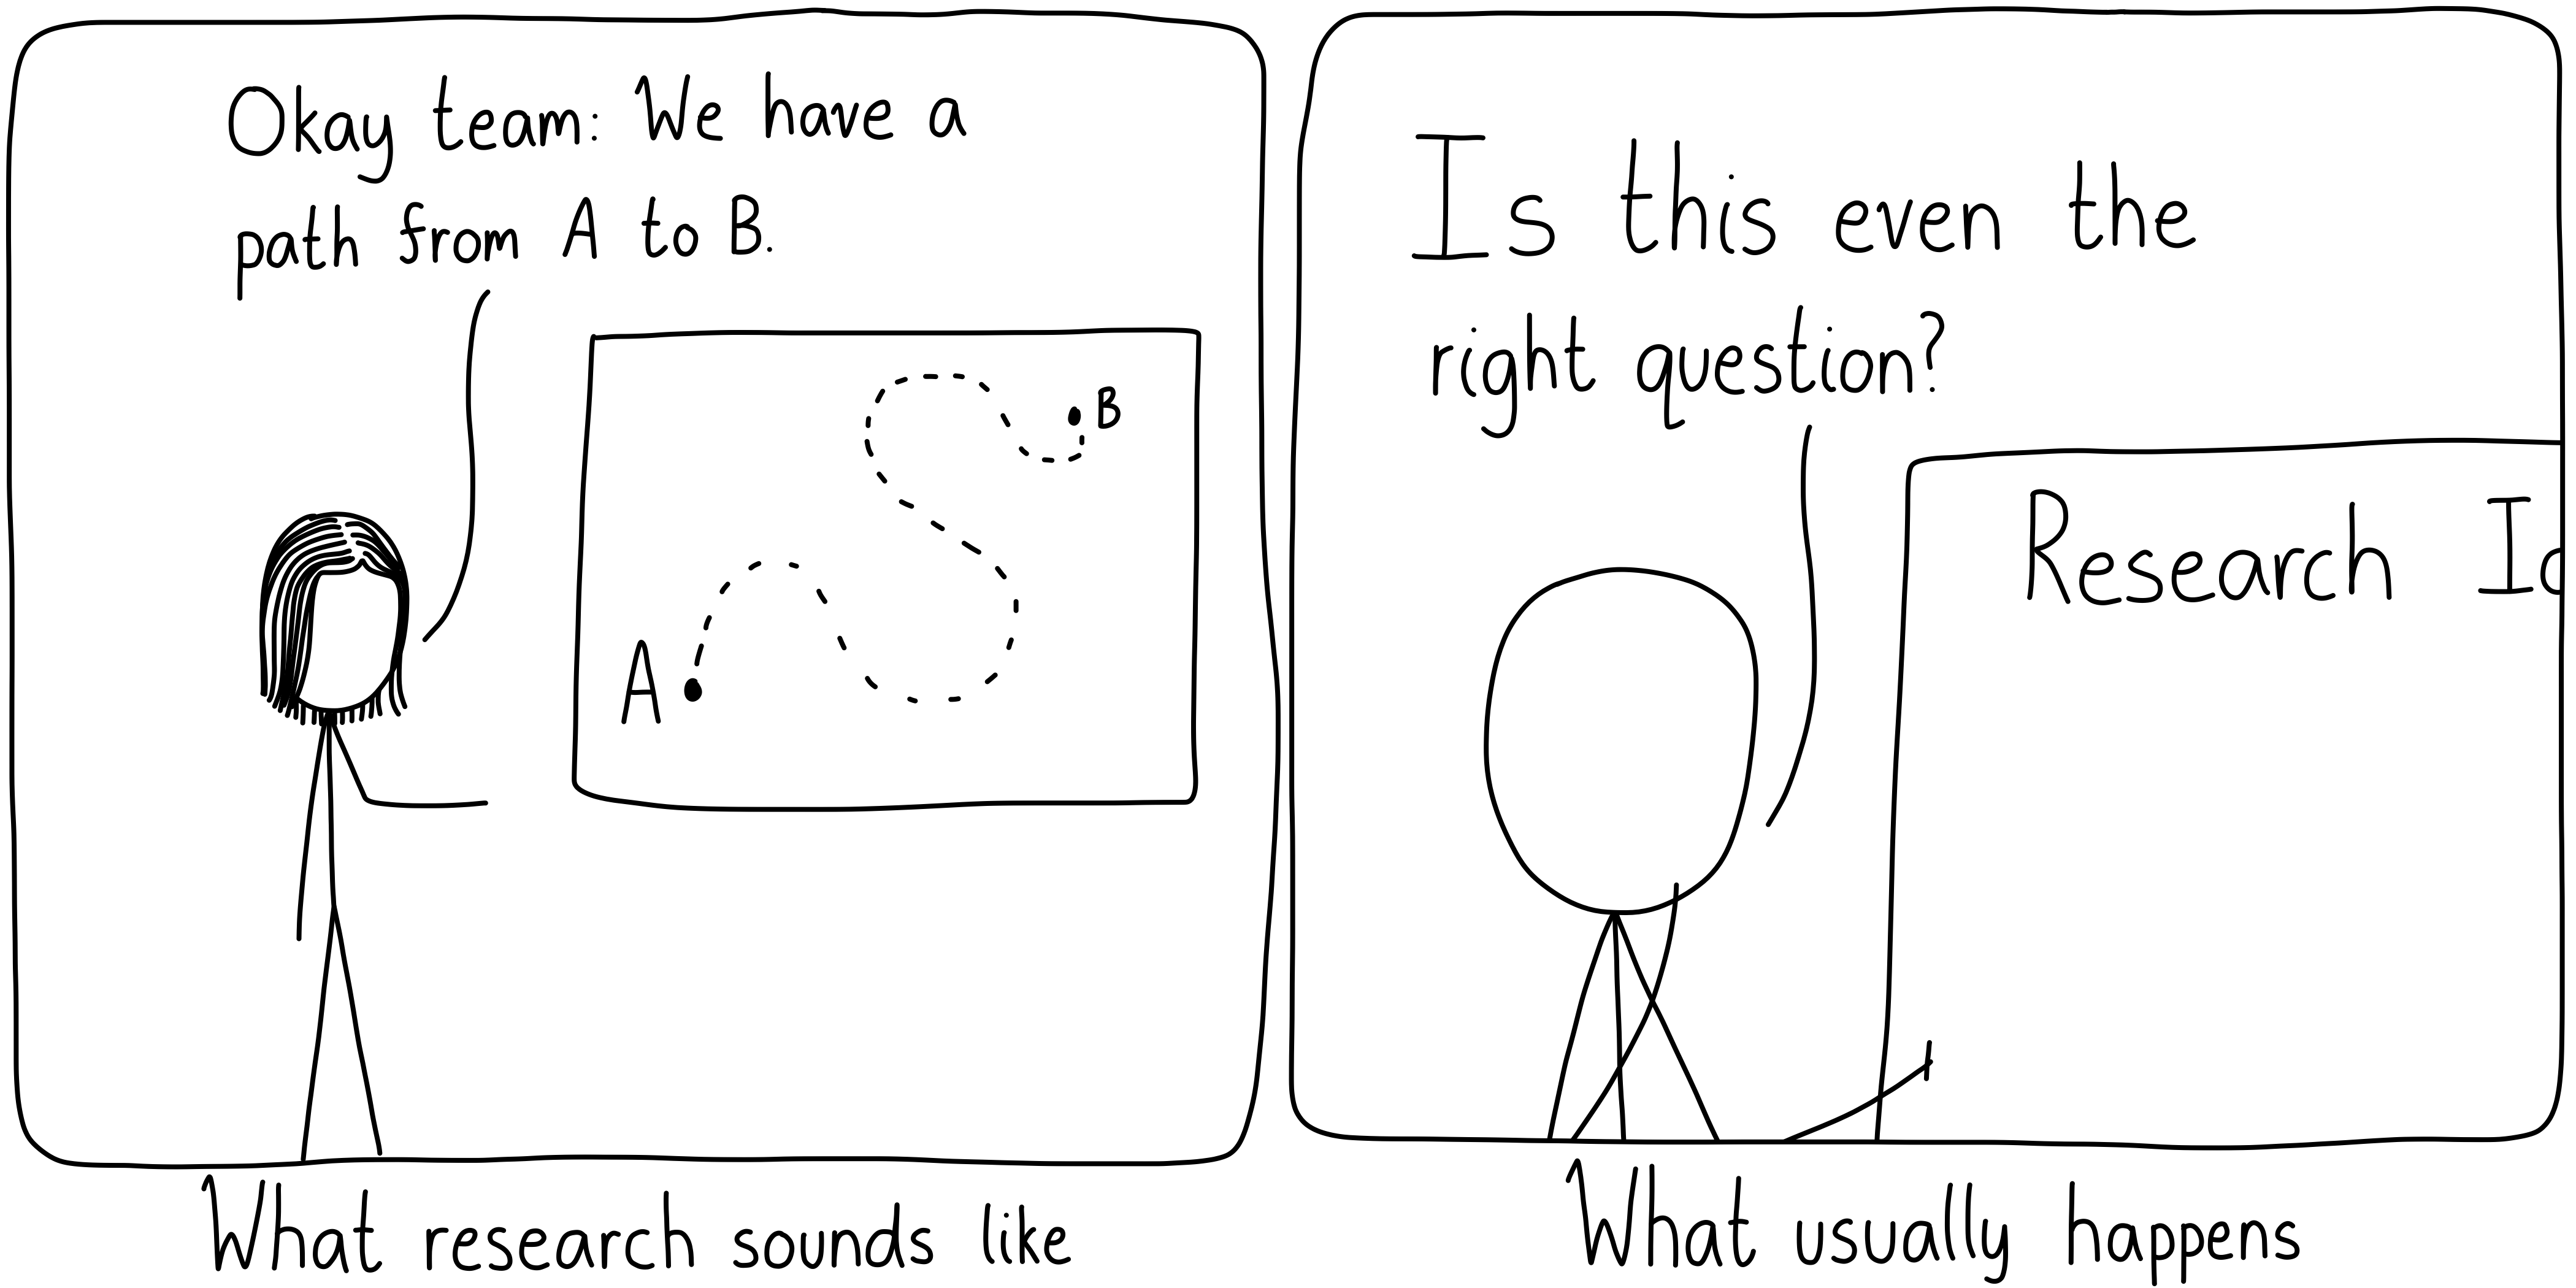 Research sometimes sounds like going from A to B, but really, most of the time is spent wondering if you're asking the right question.